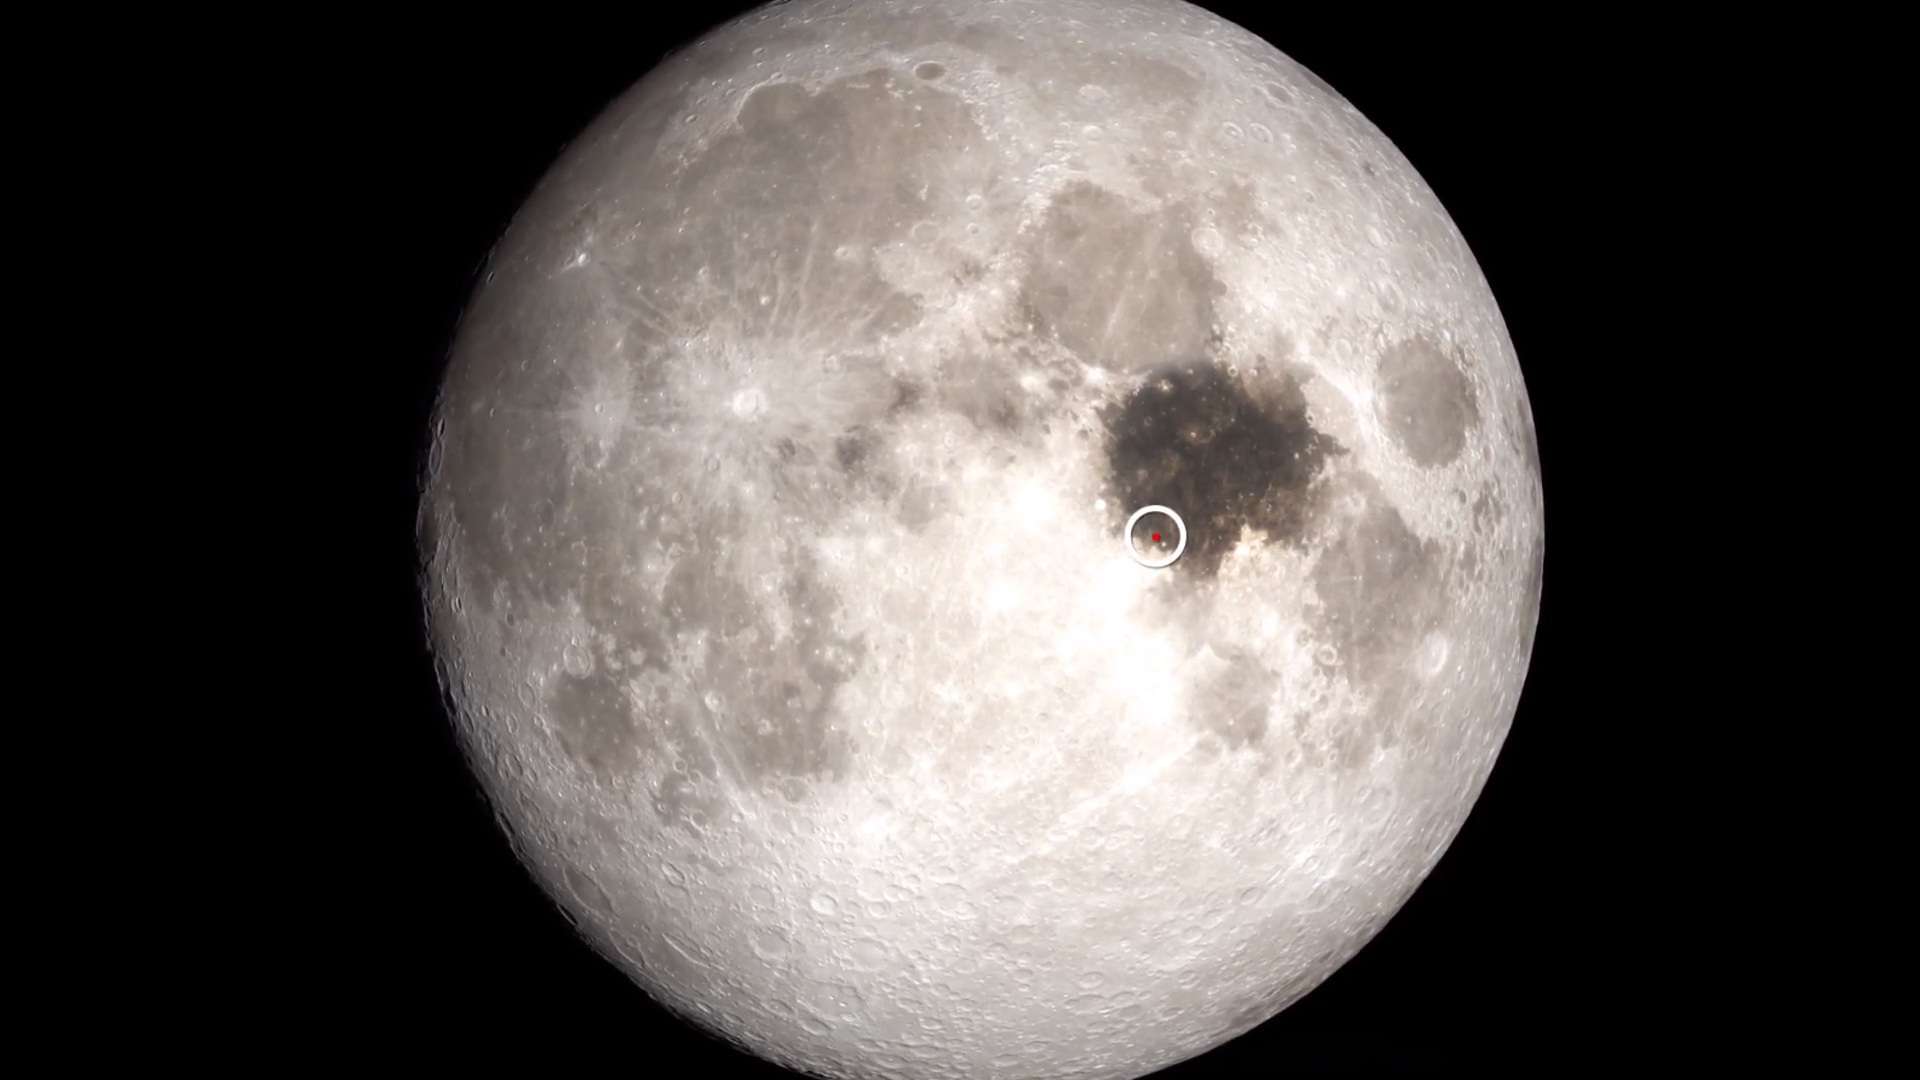 Picture of Moon with Sea of Tranquility and Apollo 11 landing site marked.